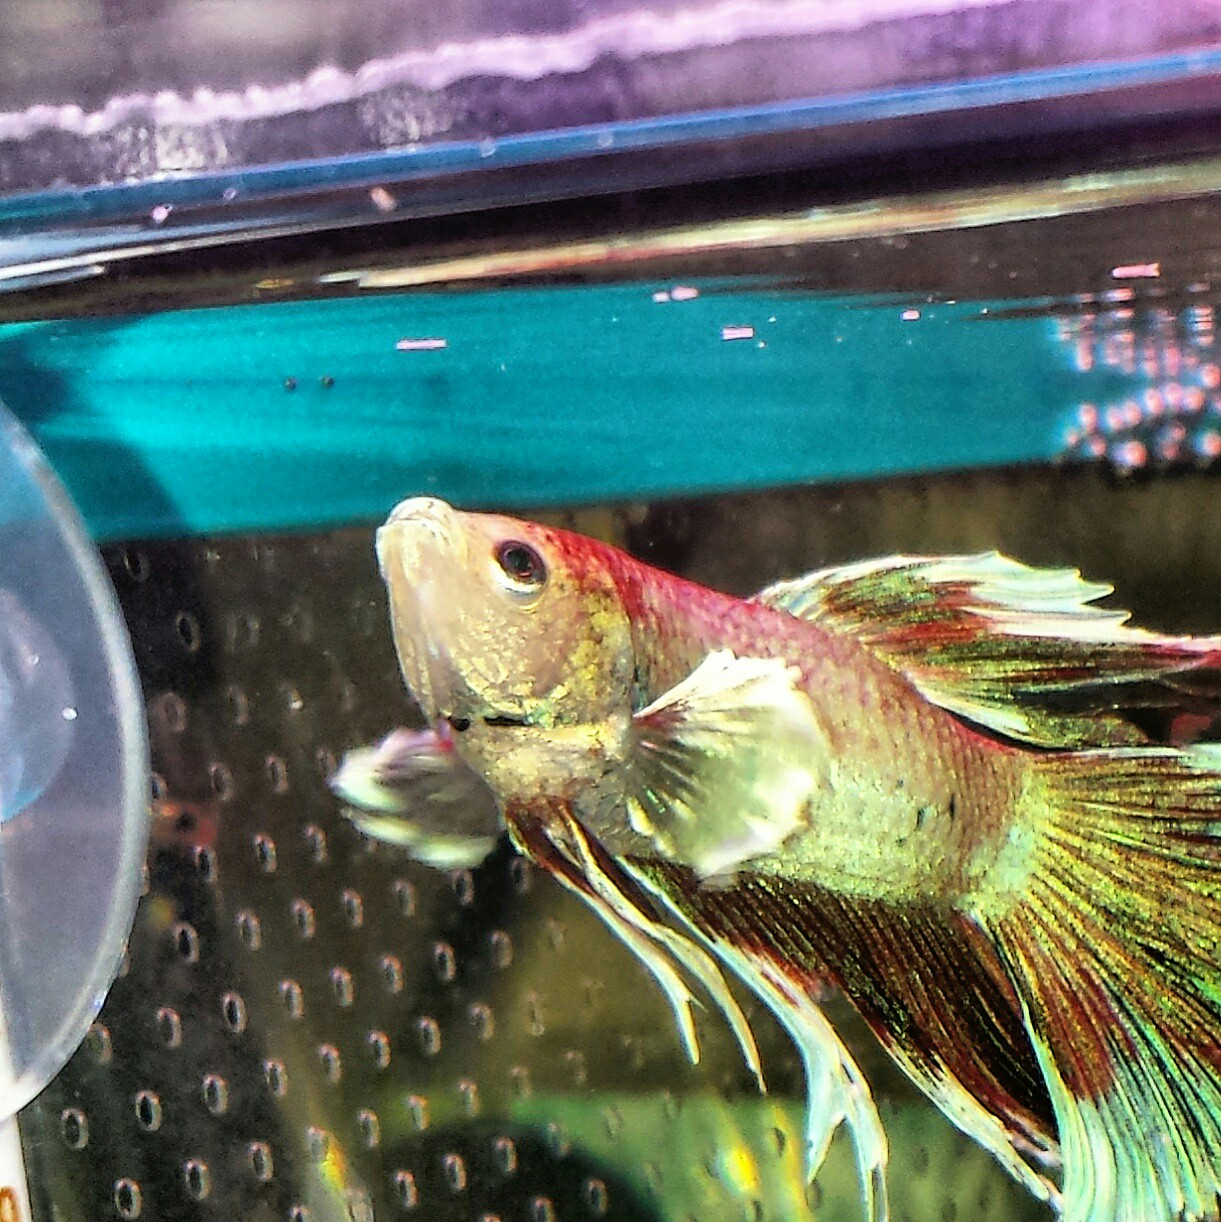 Betta fish for sale in uk 30 second hand betta fishs for Beta fish for sale